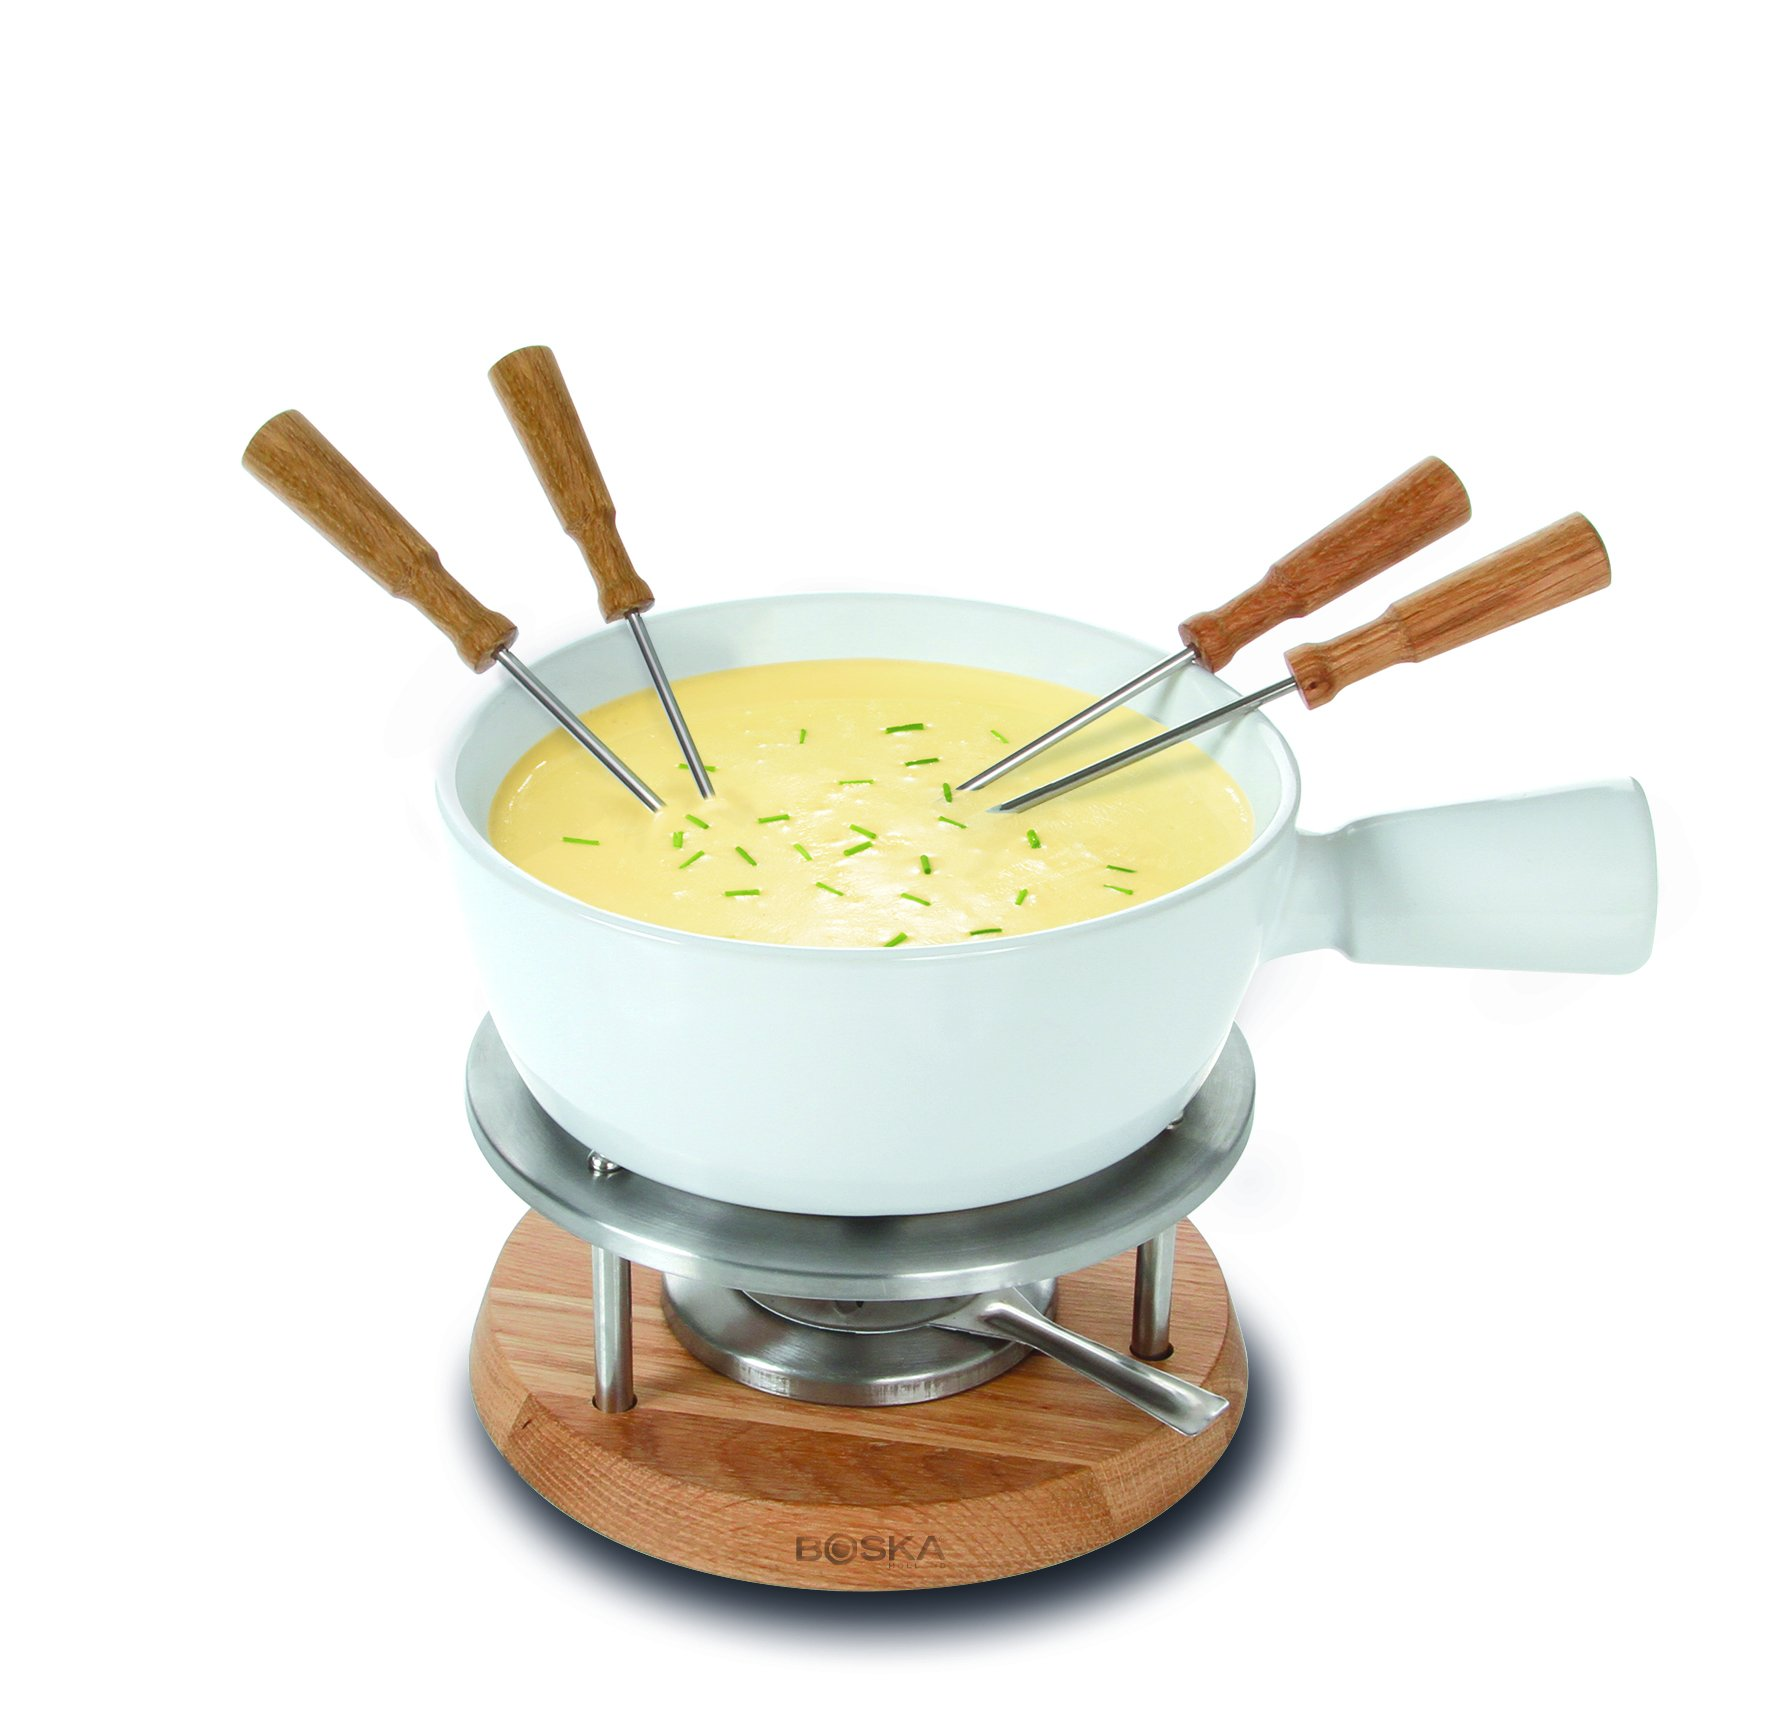 Boska Holland Cheese Fondue Set, 1 L White Porcelain Pot with Oak Wood Base, Life Collection